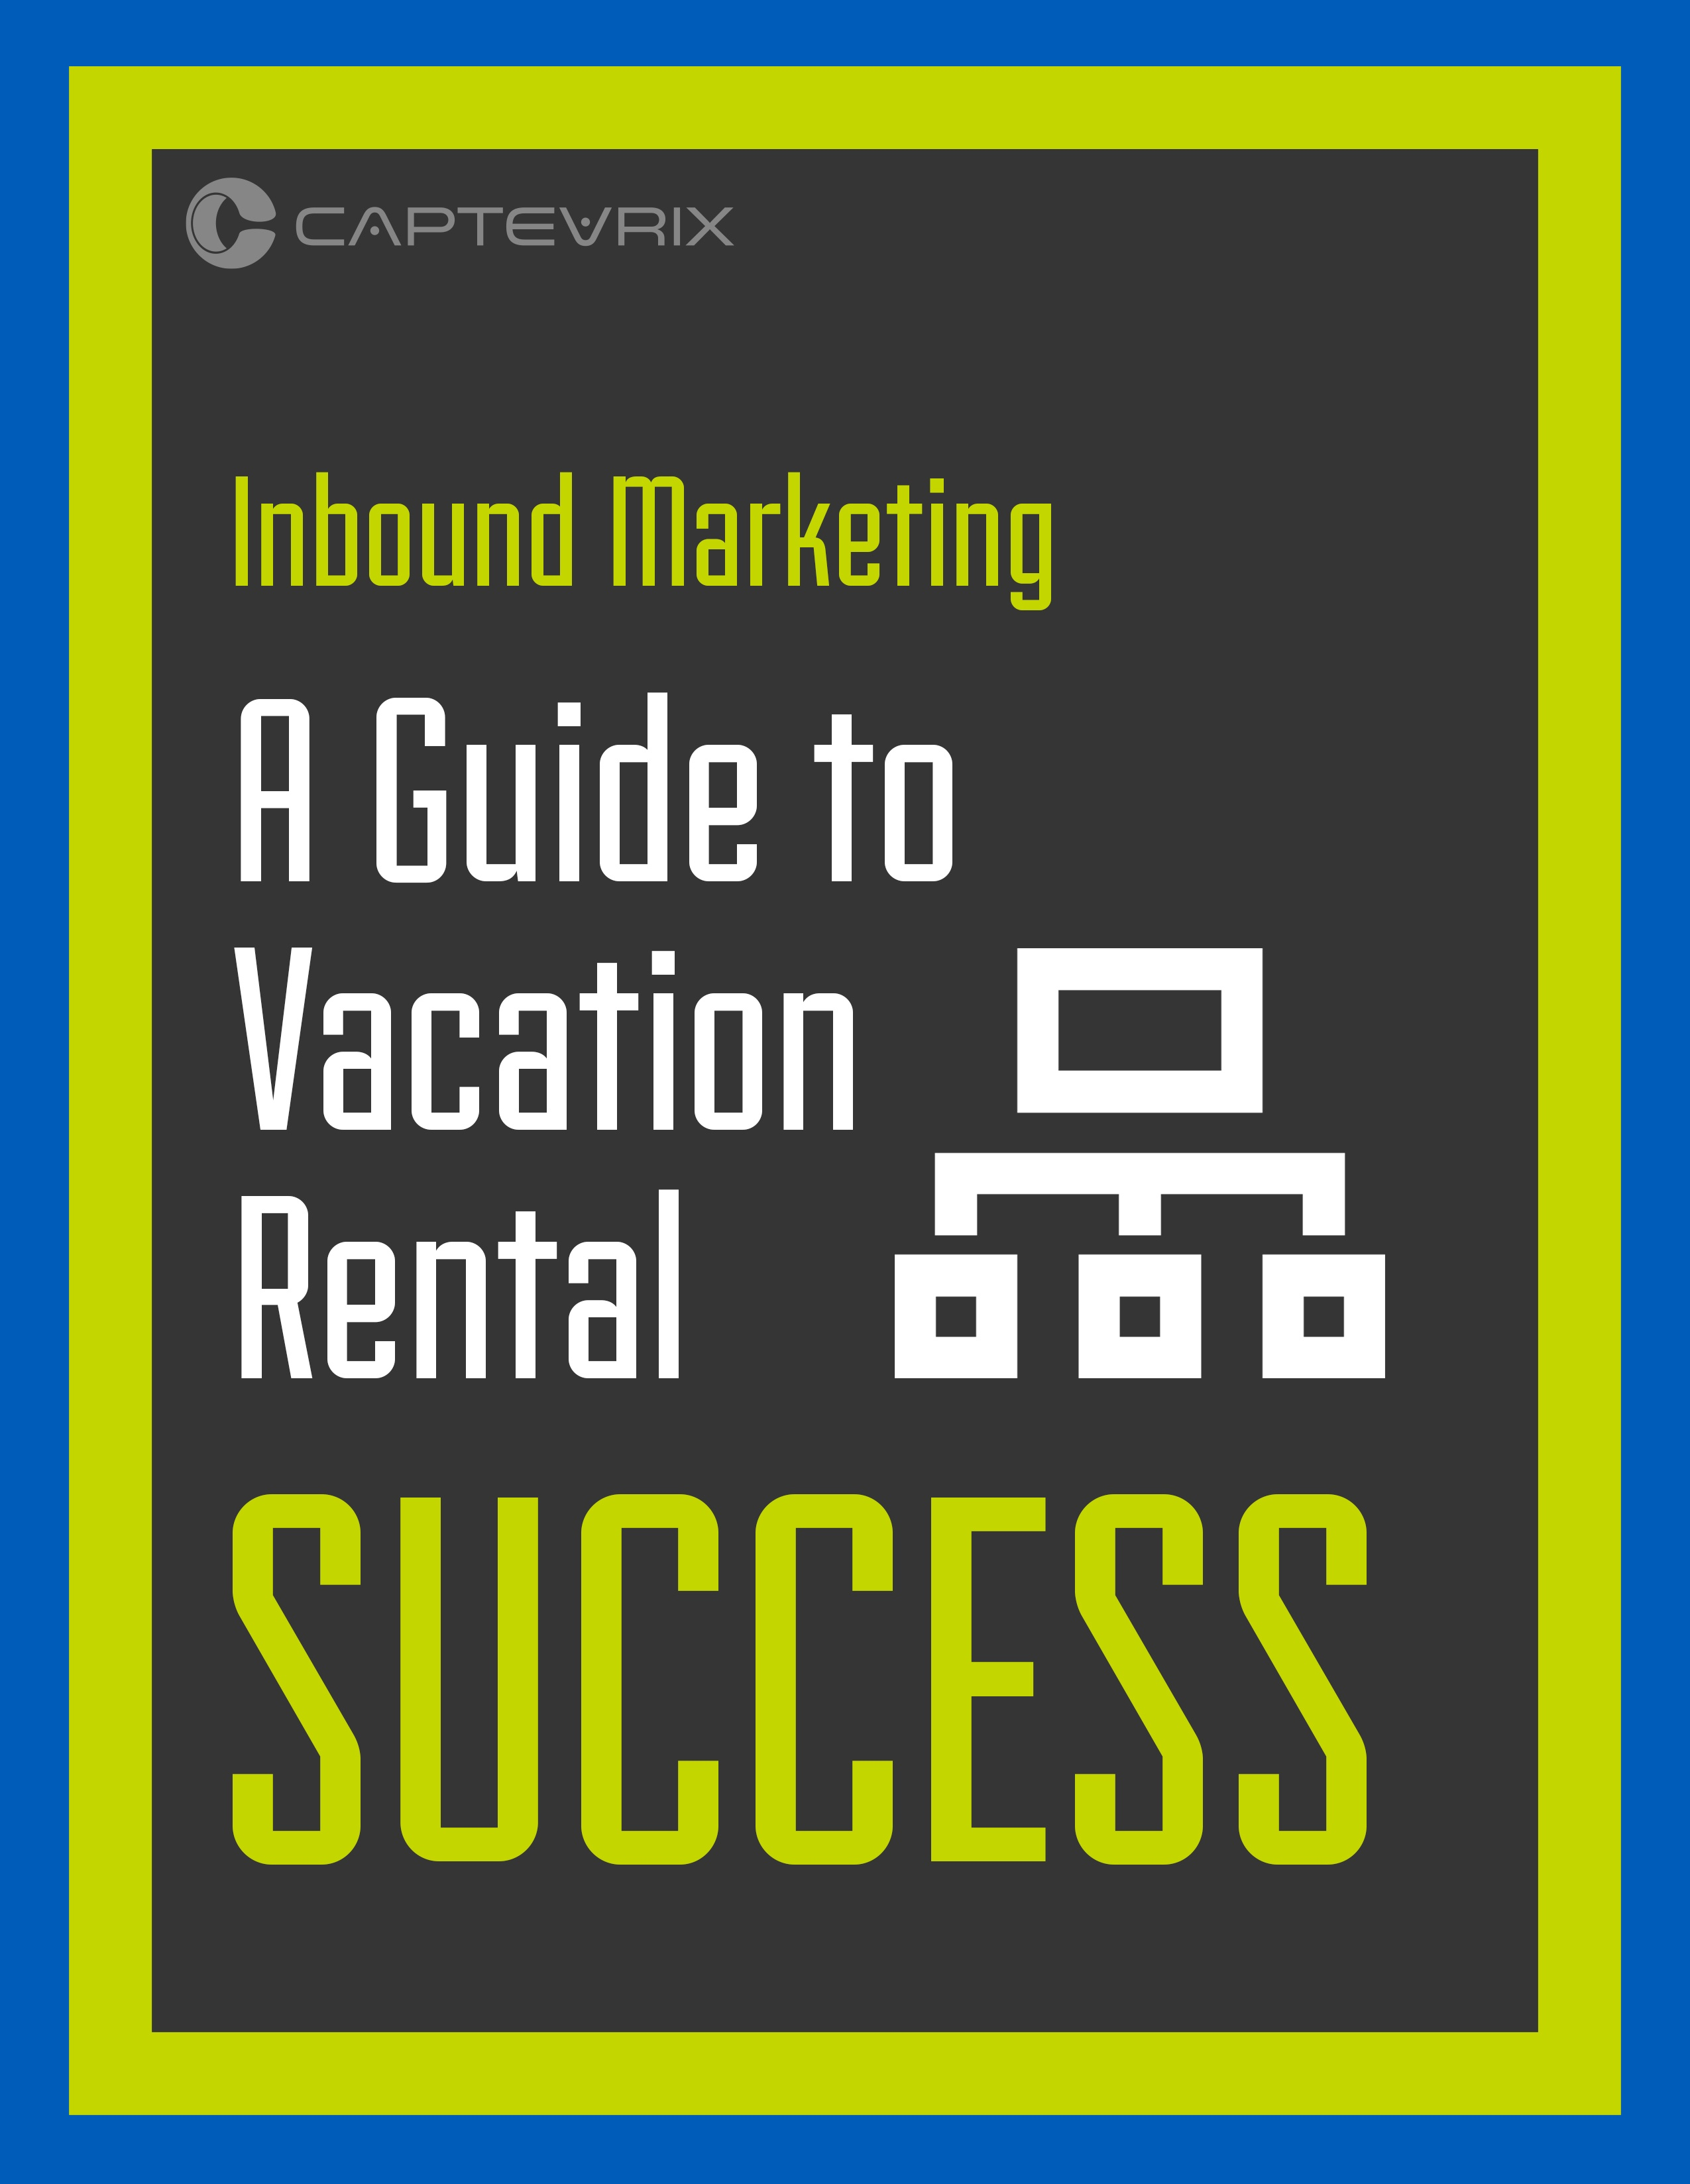 Inbound Marketing - A Guide to Vacation Rental Success